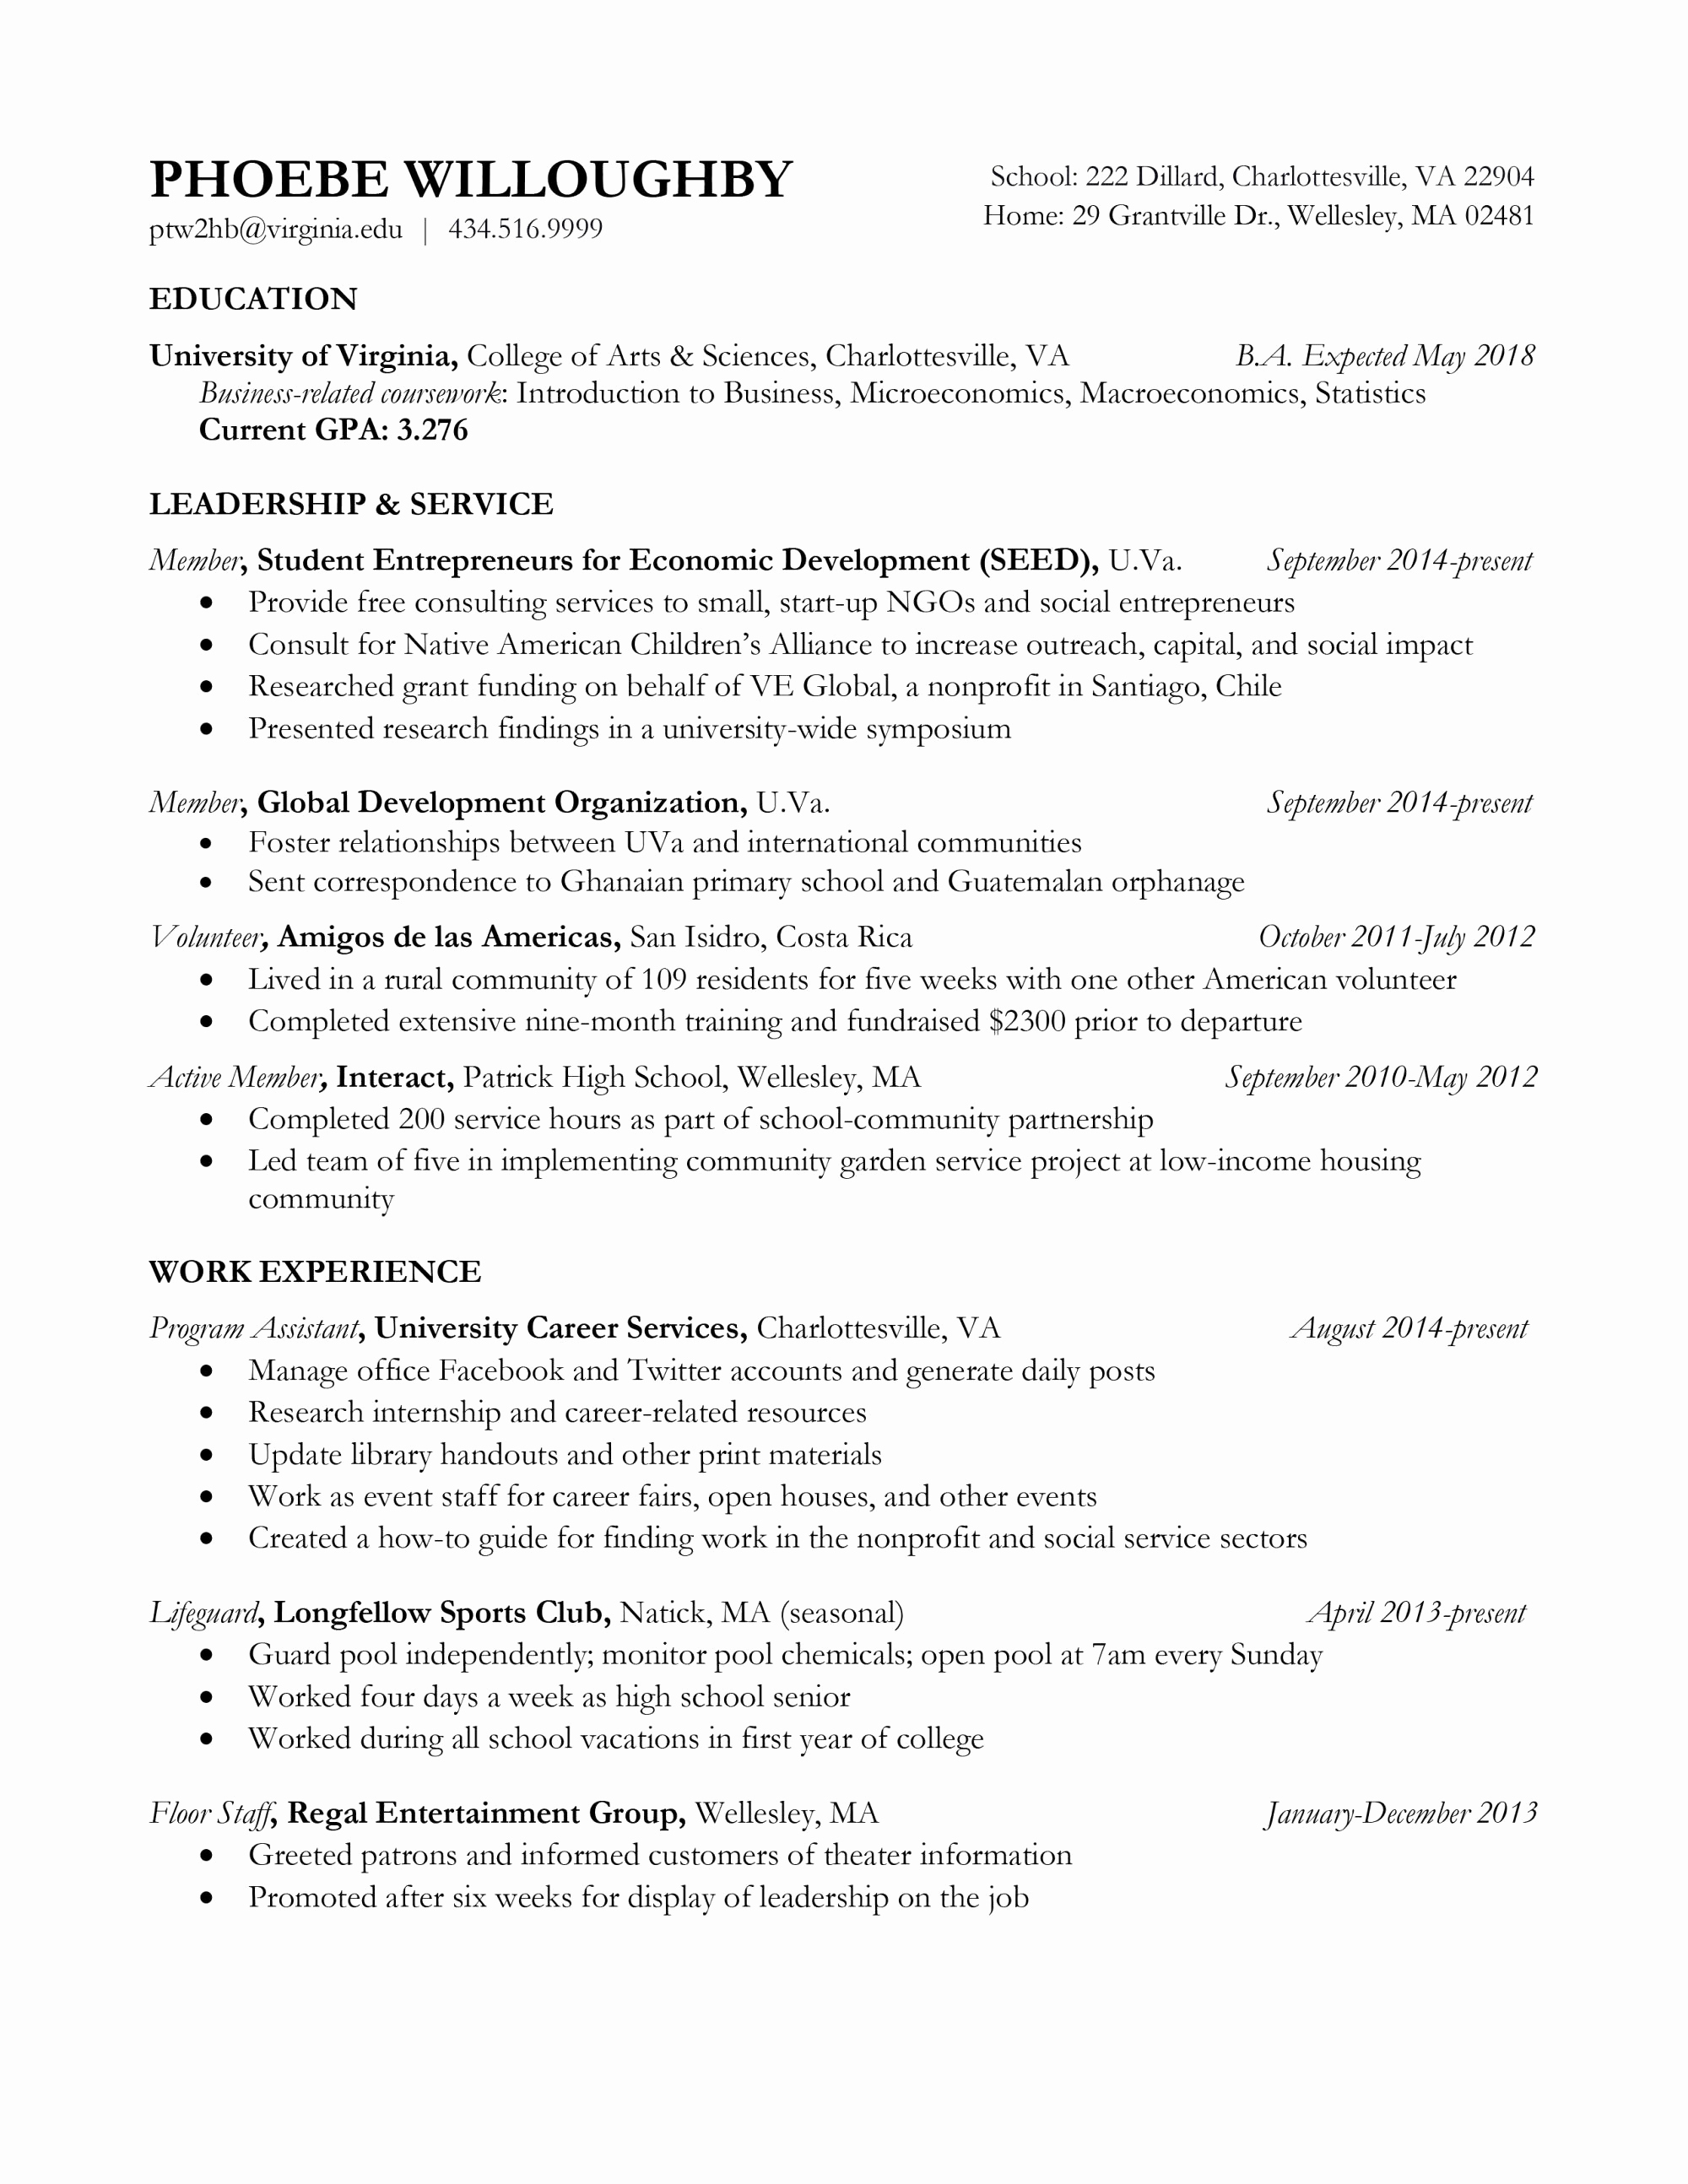 retail resume template example-Chef Resume Samples Awesome Retail Resume 0d Archives Luxus Regalsystem 606 4-l